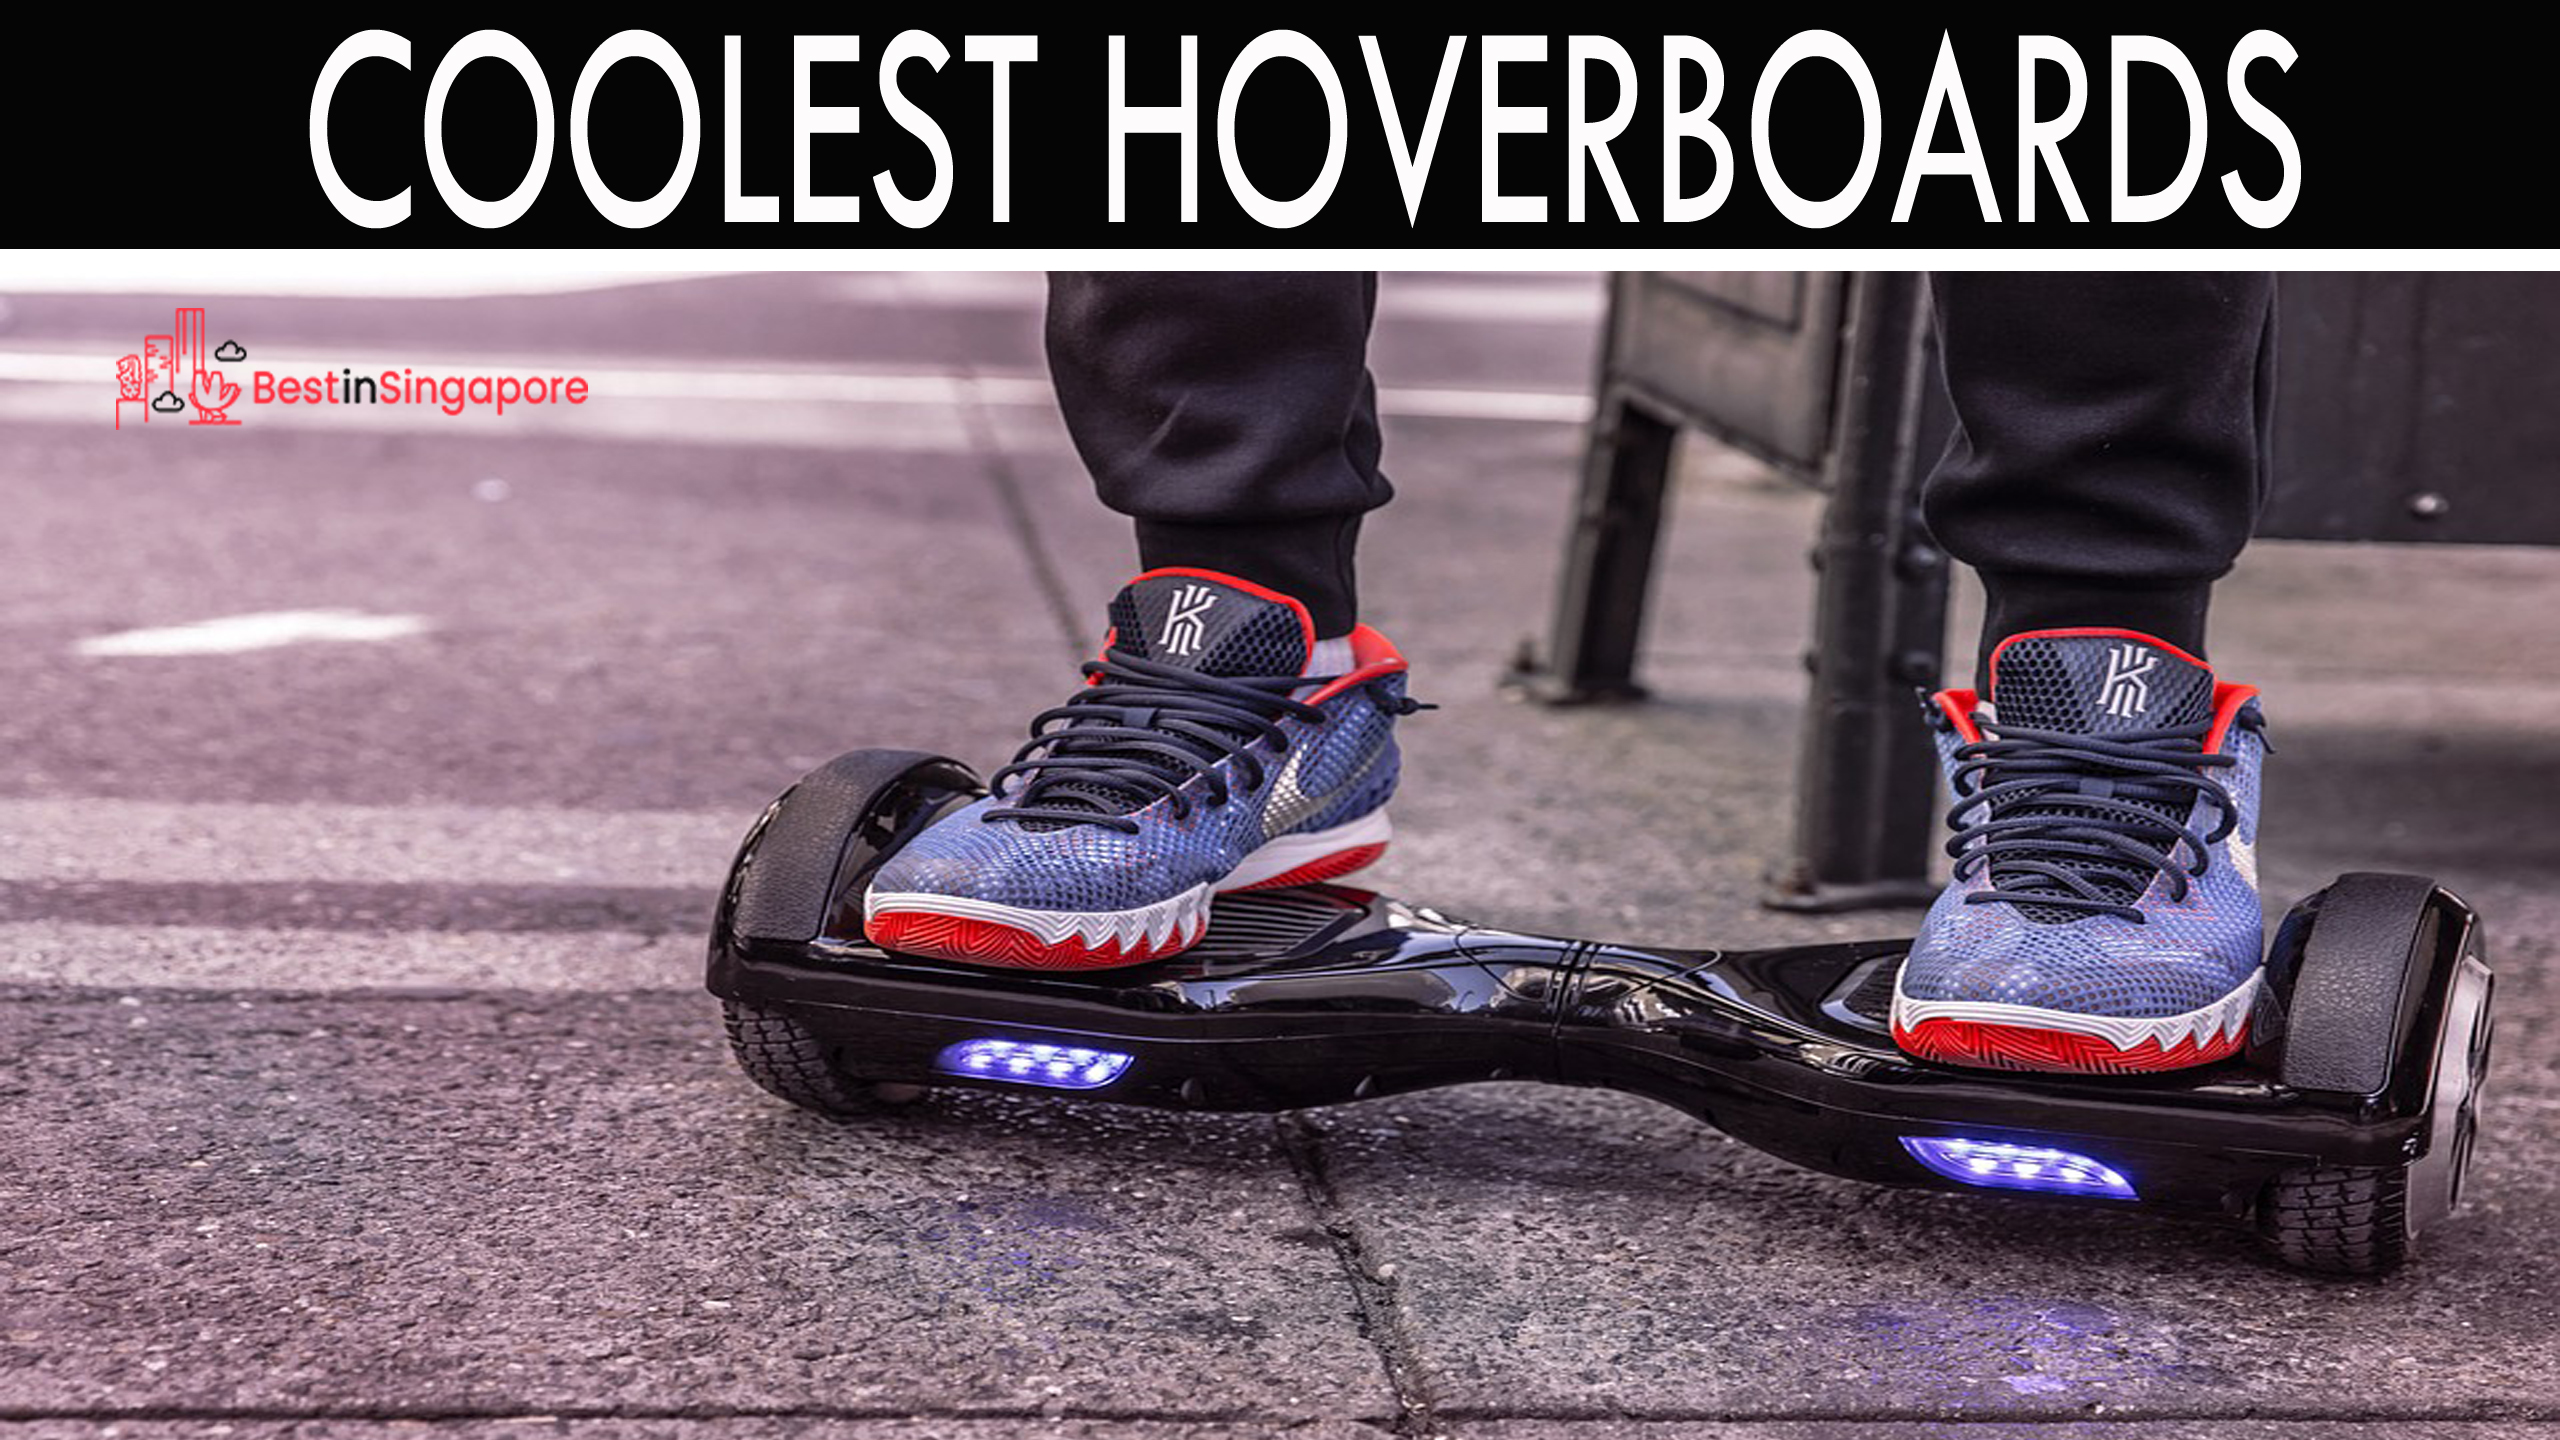 Best Hoverboards Singapore